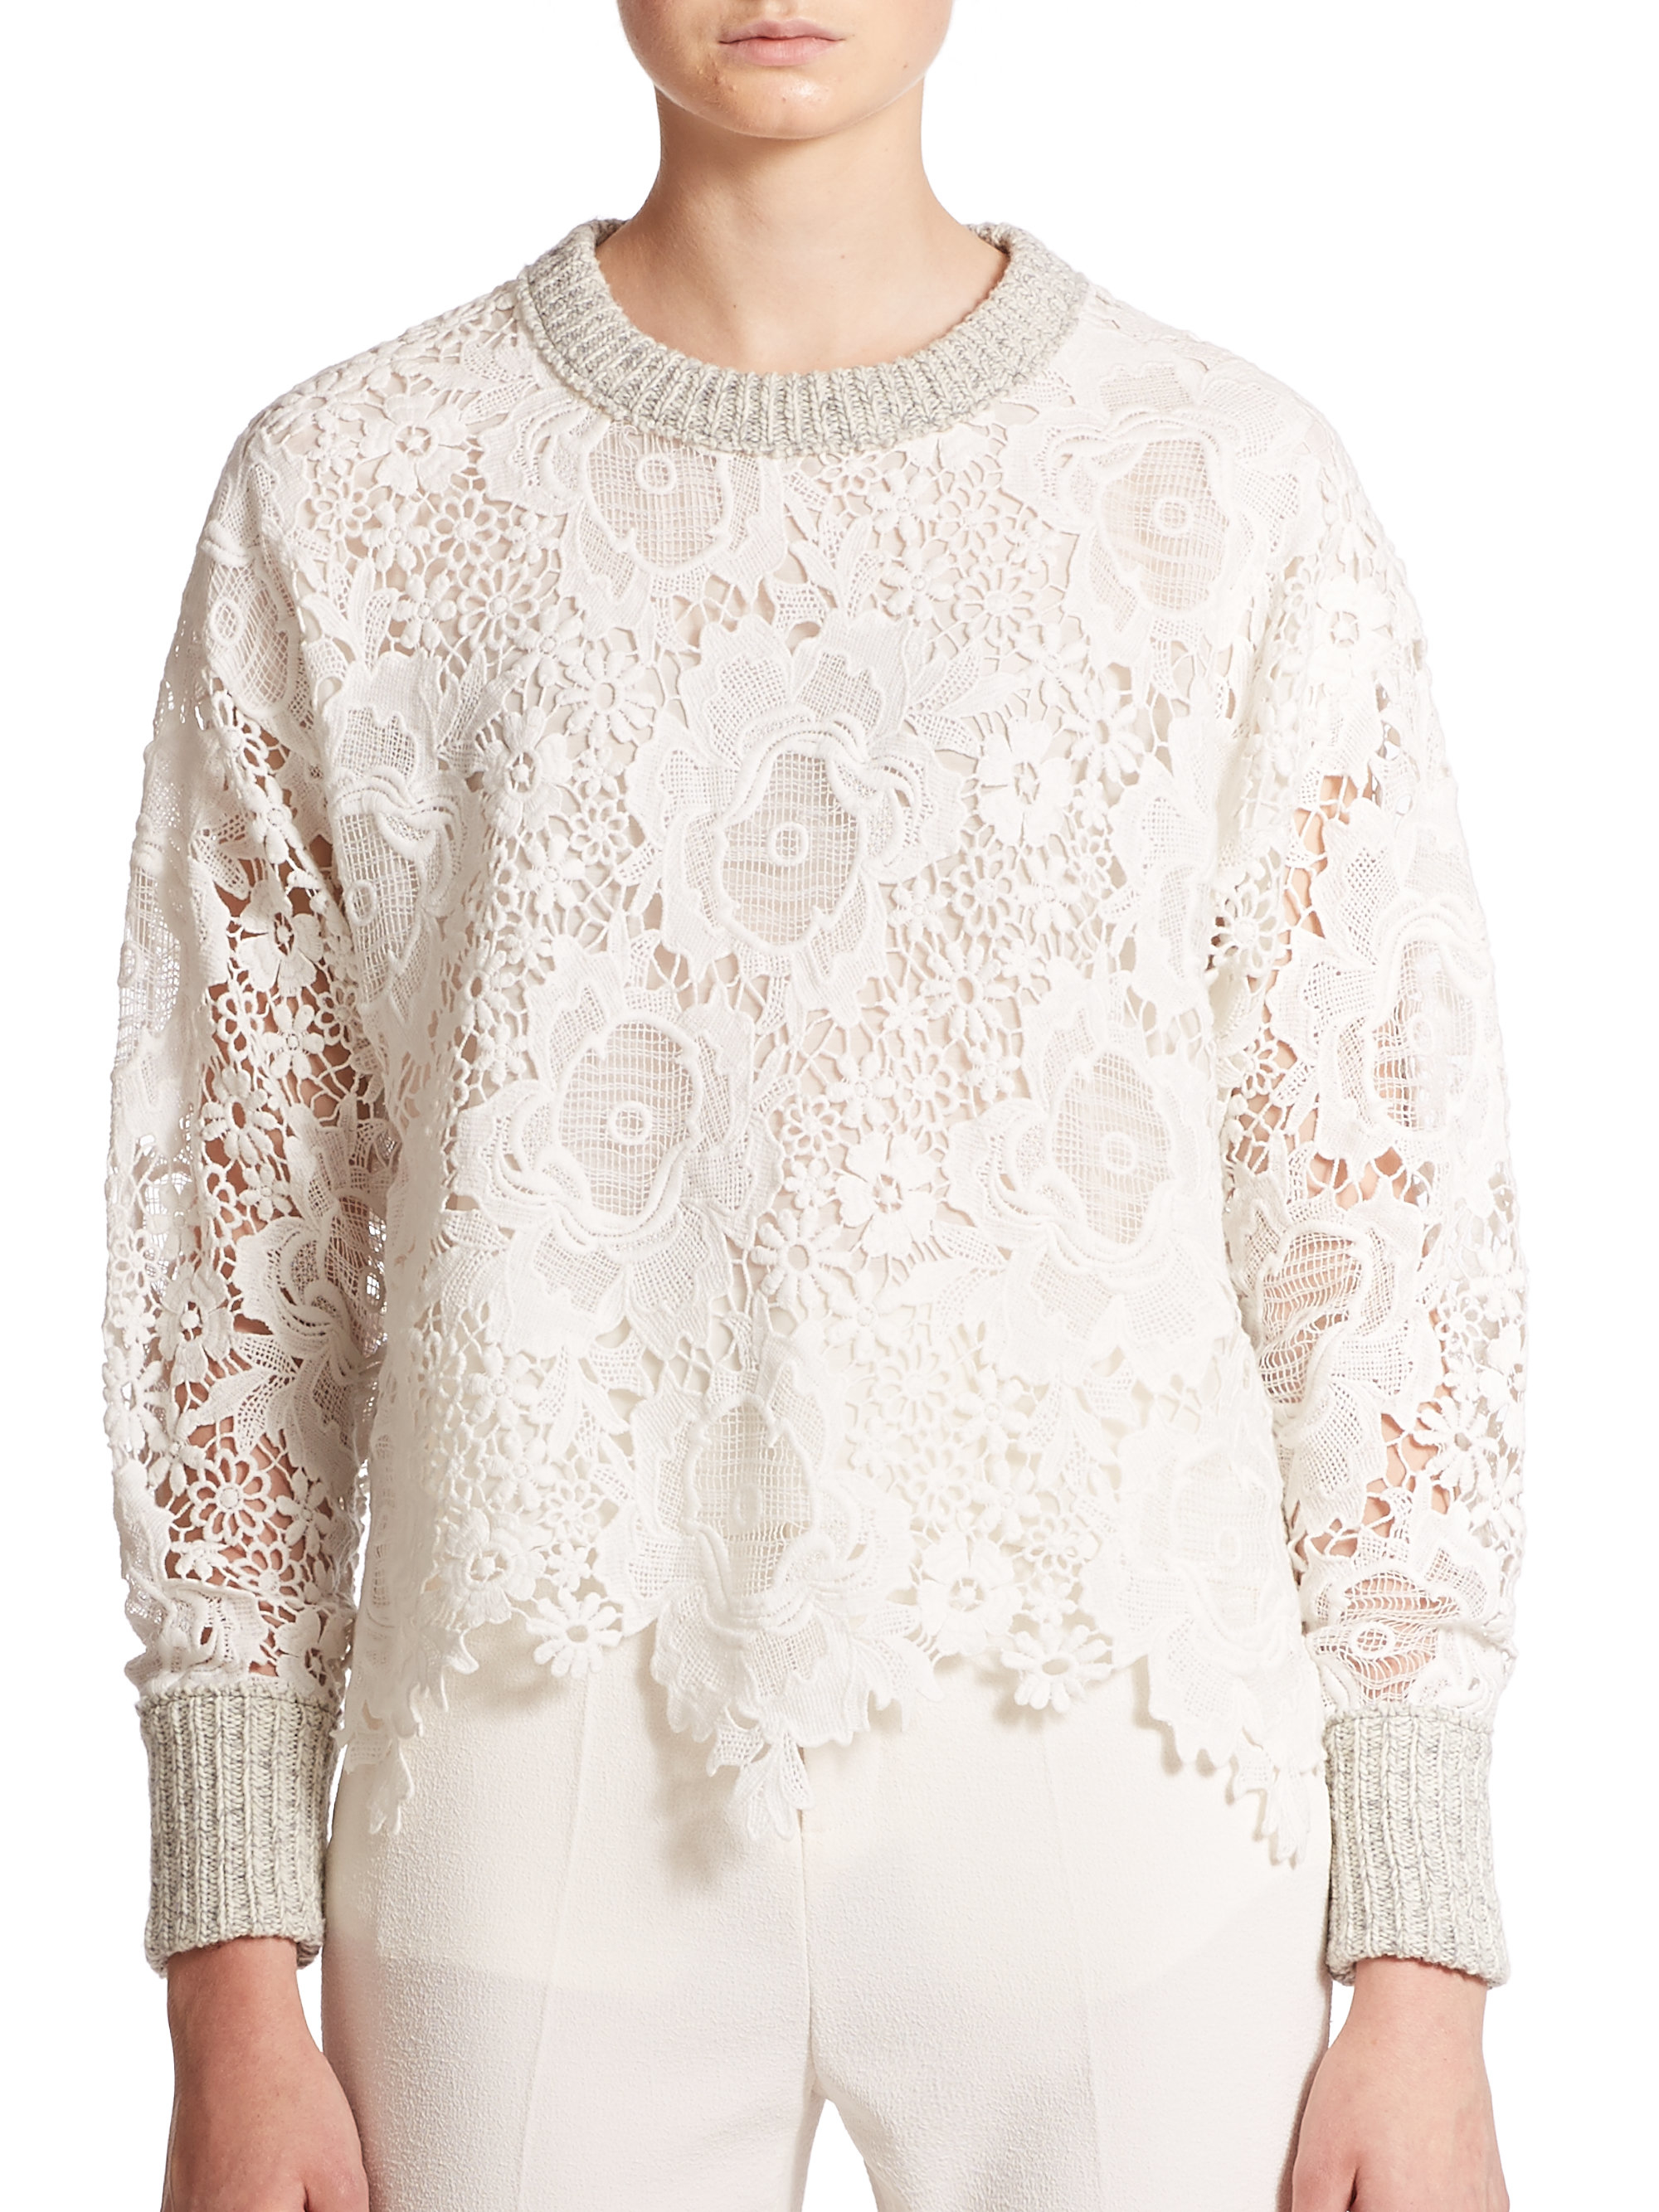 See by chloé Lace & Knit Sweater in Natural | Lyst